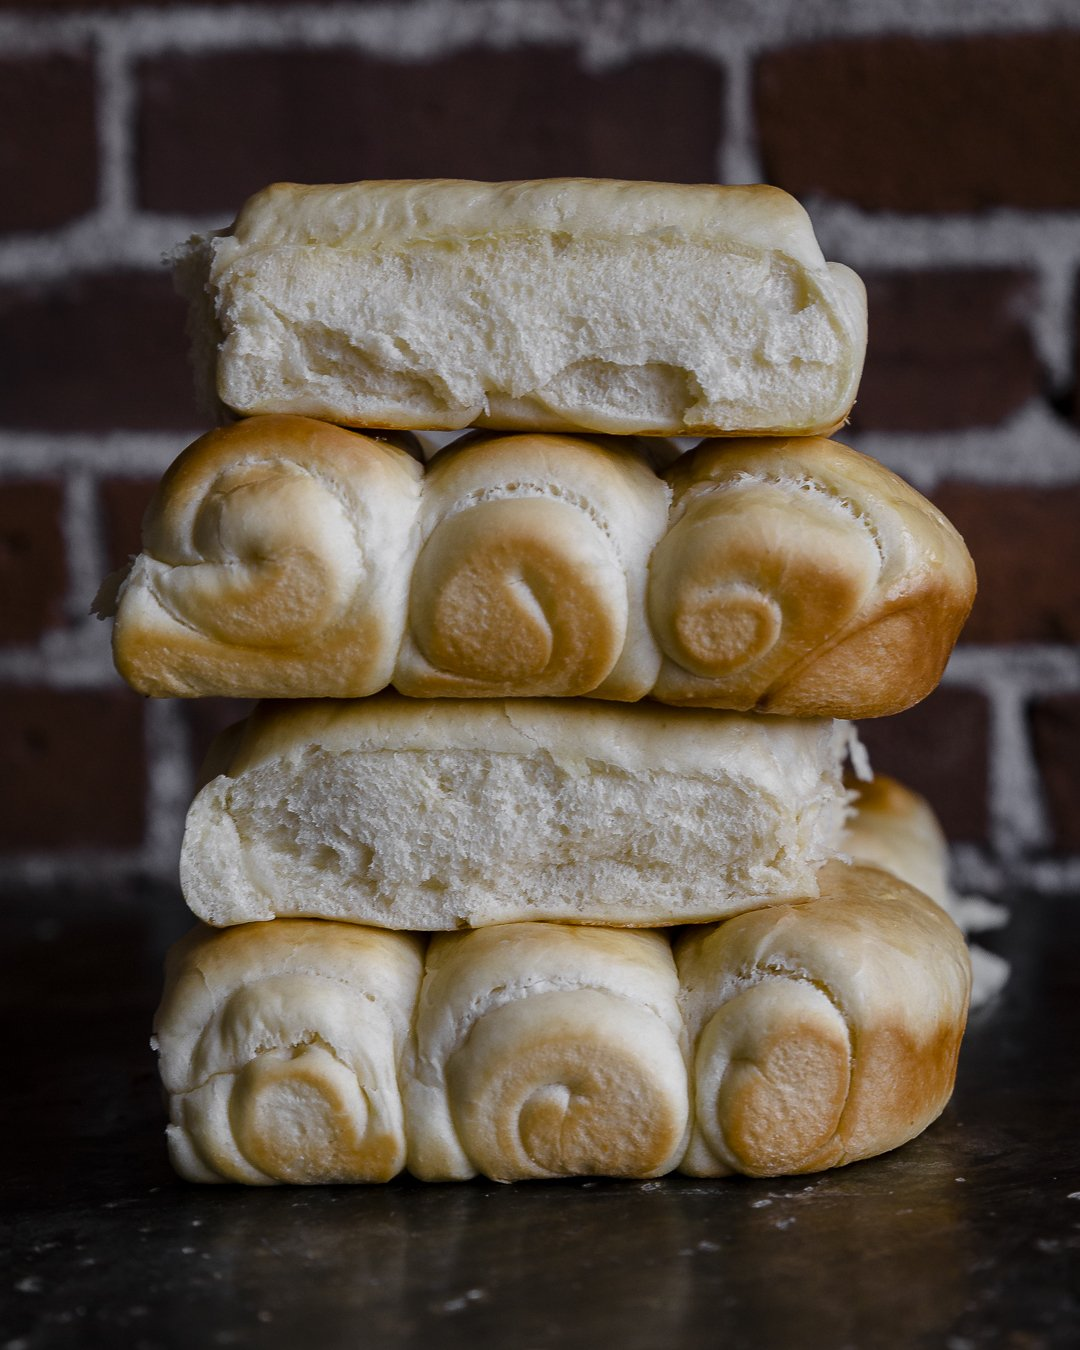 a stack of homemade hot dog buns, showing the ideal color and texture